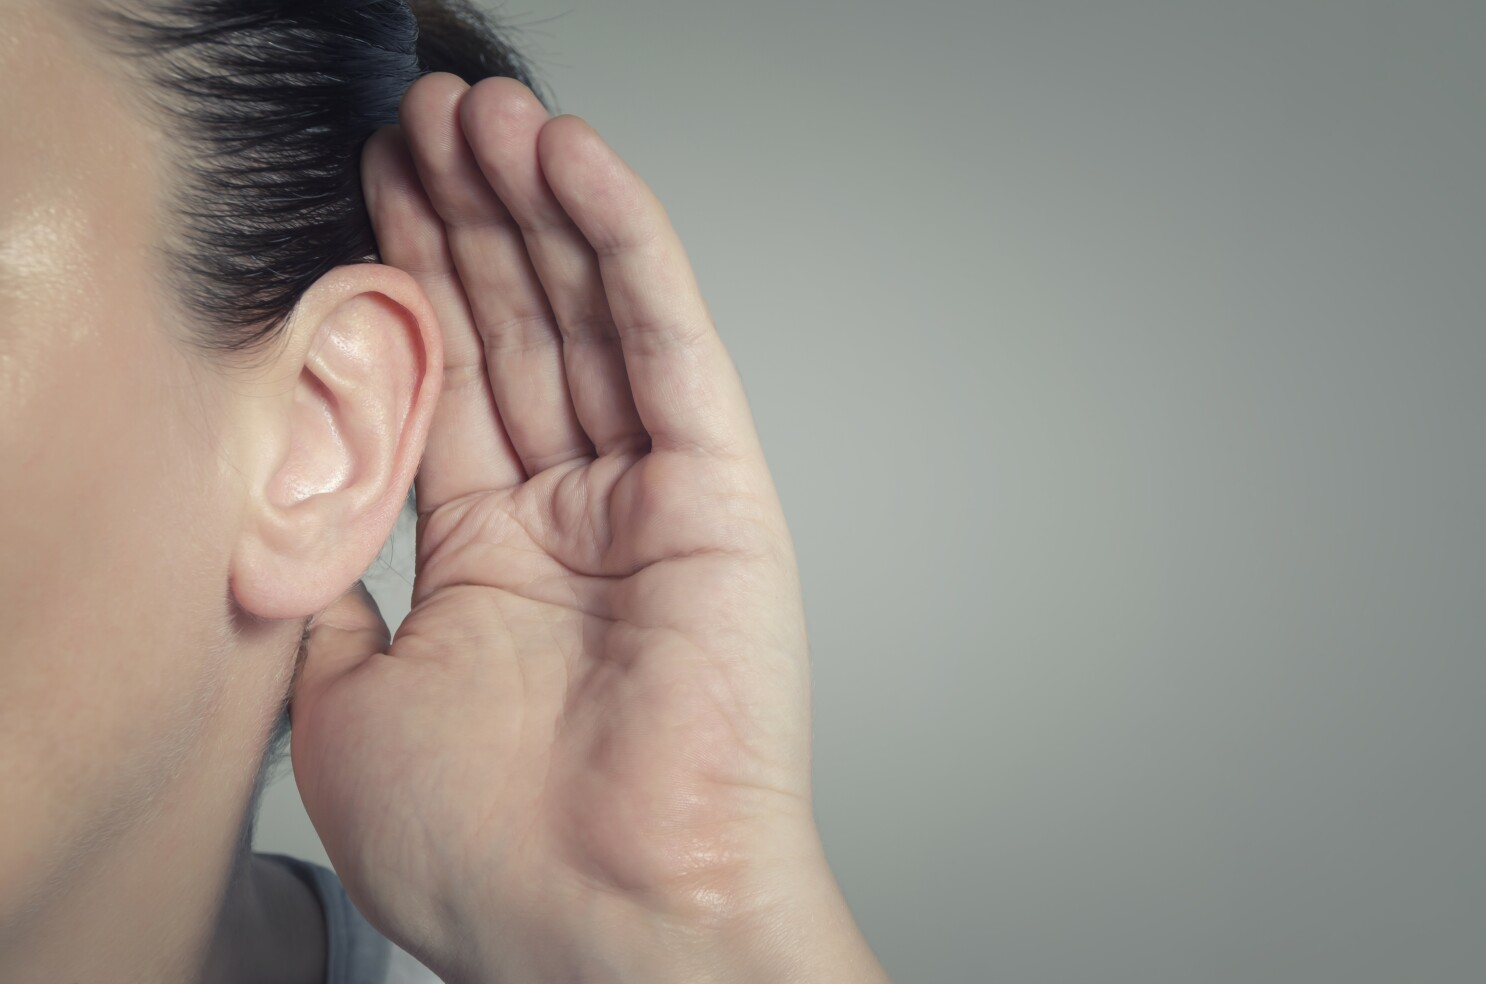 How to be a better listener by not talking so much - The San